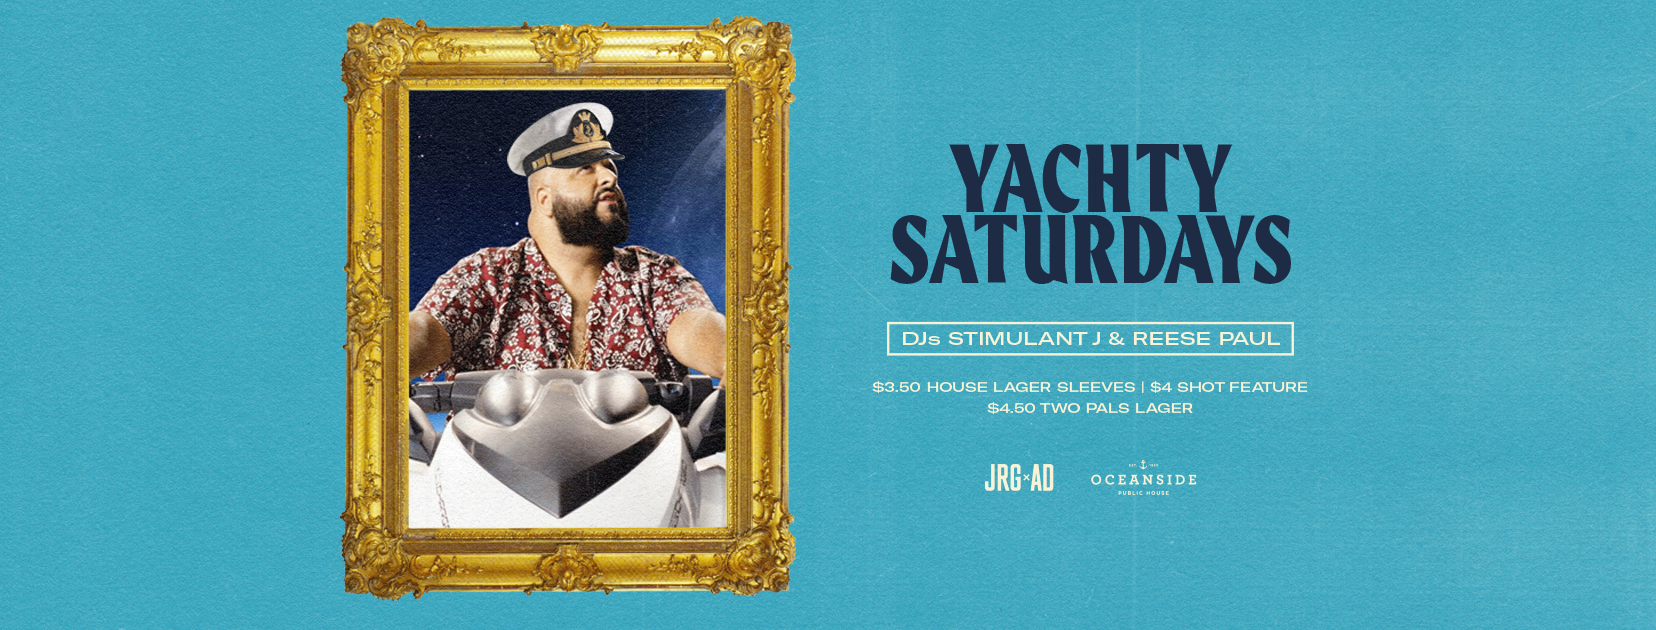 Yachty Saturdays